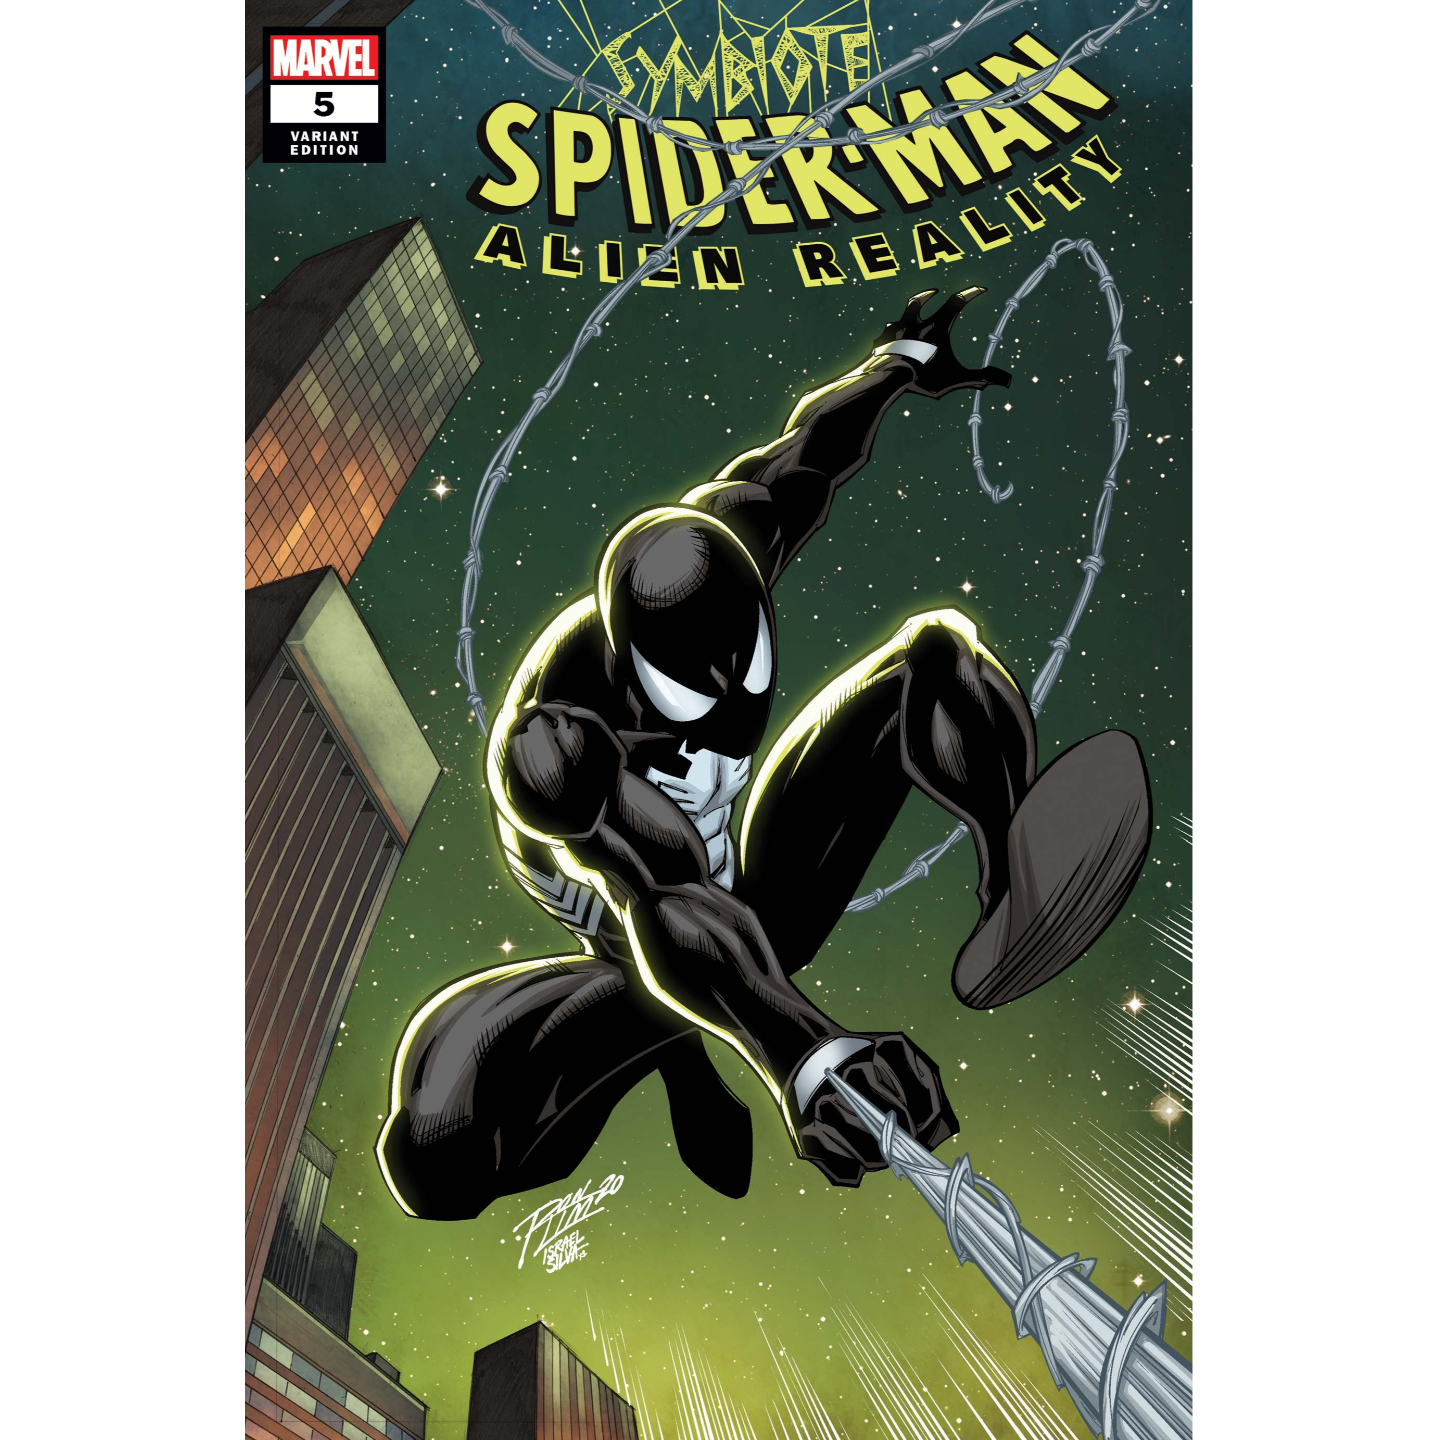 SYMBIOTE SPIDER-MAN ALIEN REALITY #5 (OF 5) RON LIM VAR